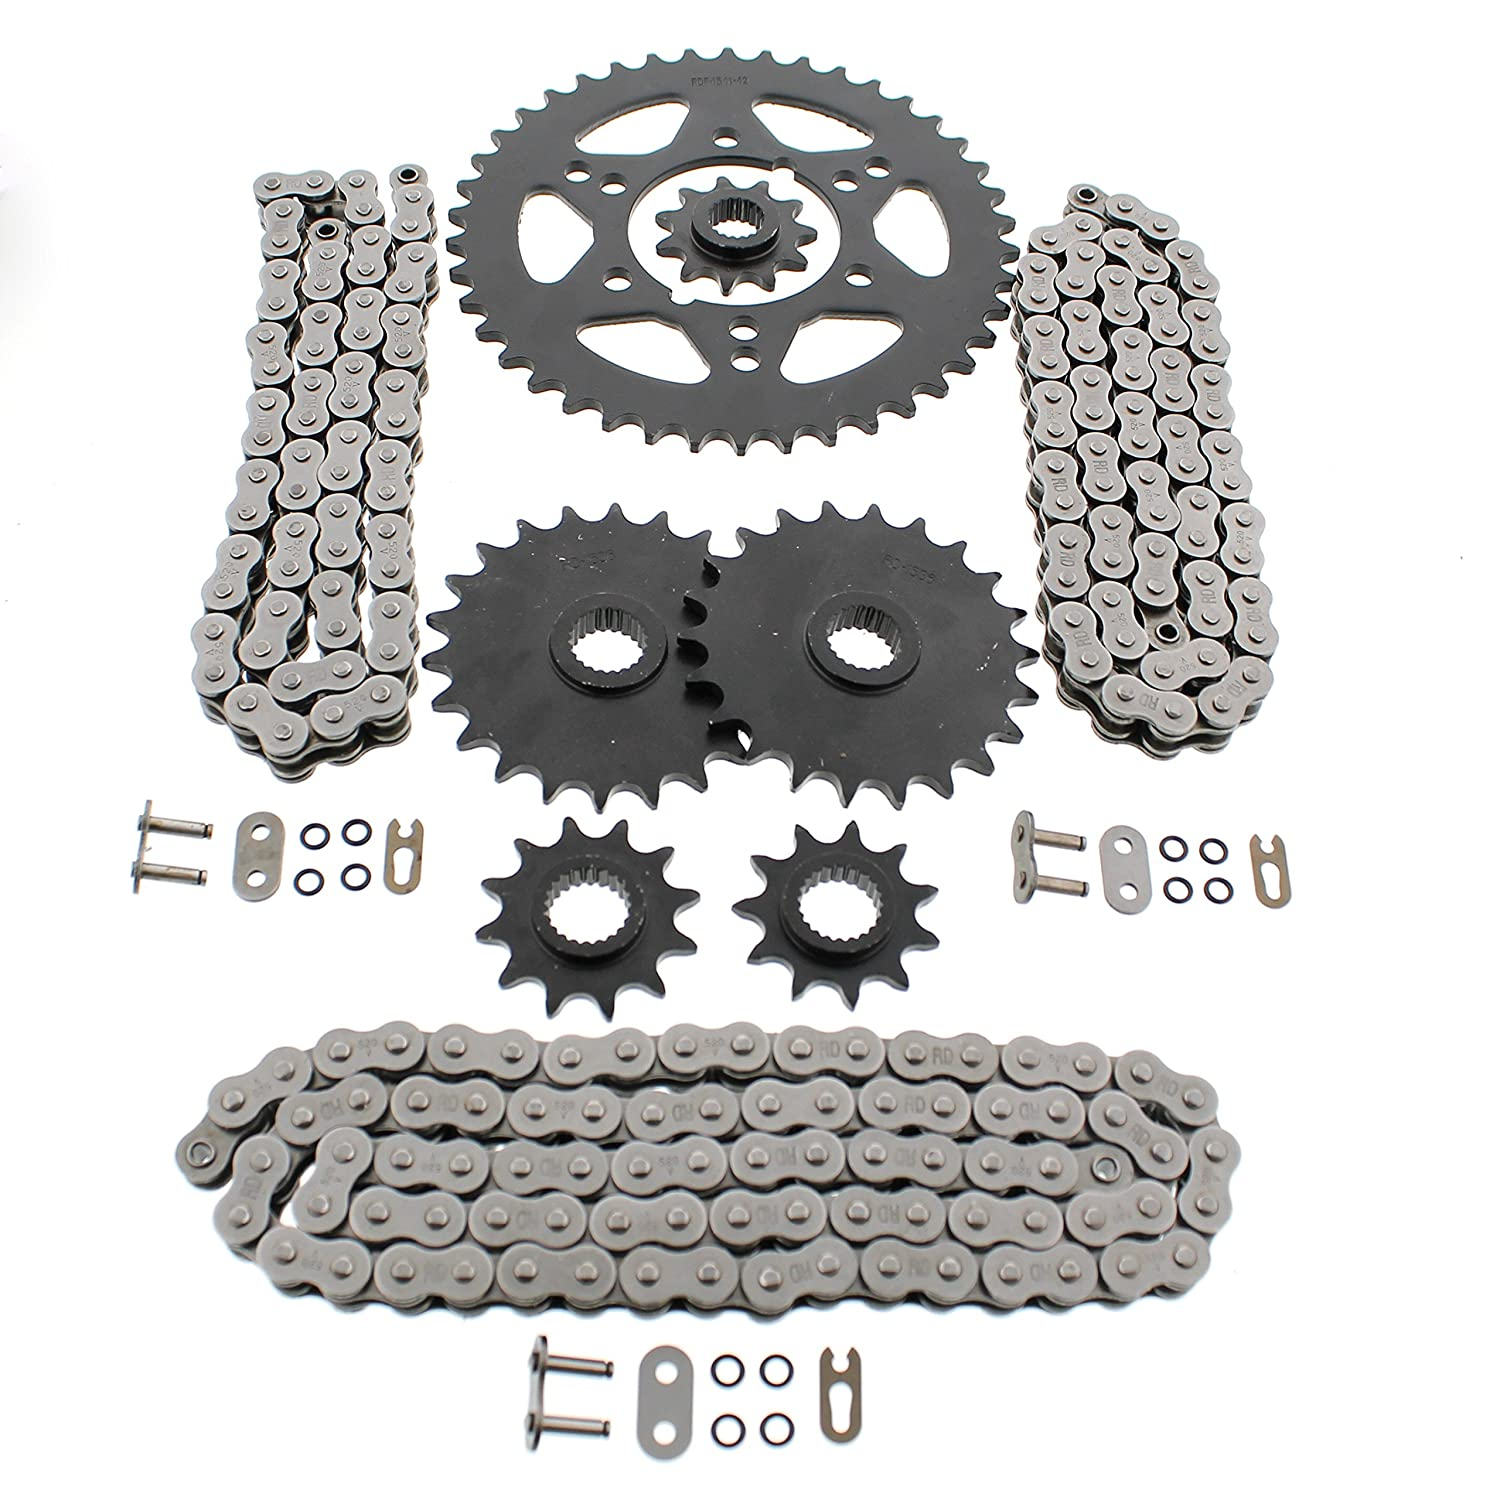 1990-1993 Polaris 250 Trail Boss 4x4 O Ring Chains /& Complete Sprocket Set